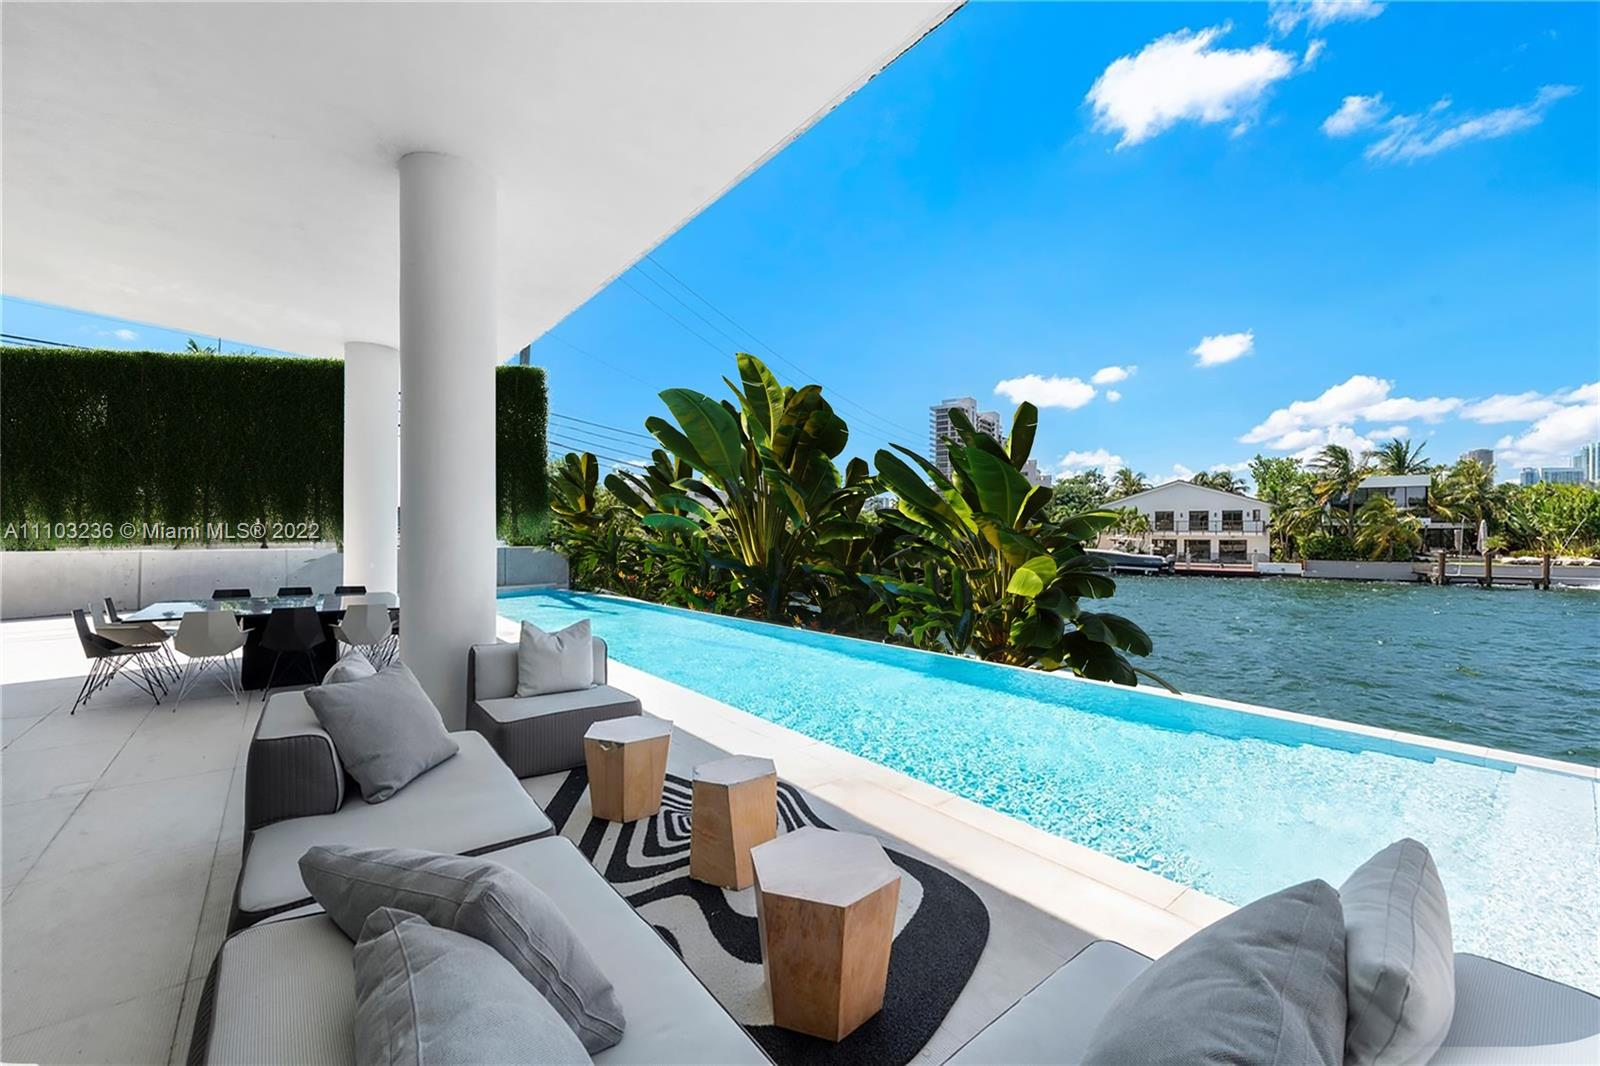 Tropical Modern 8,871 SF estate on the wonderful Venetian Islands will certainly impress upon arrival.  The sun drenched mansion boasts triple exposures from the tip of San Marco Island. Striking Downtown Miami Skyline views and sunsets to the west, cruise ships alley to the south and Edgewater skyline to the north.  An impressive spiral staircase, reminiscent of the Guggenheim Museum, graces the home as a sculptural work of art.  Beautiful Scandinavian interior design features wide plank wood floors, Baltic Grey Marble and Carrara Marble diamond patterns adorn the wonderful social rooms, and an enormous open concept kitchen all with water views.The grand suite features a flow-through fireplace, gym, full spa with  steam/sauna, waterfall jacuzzi and meditation room. Live the ultimate life.